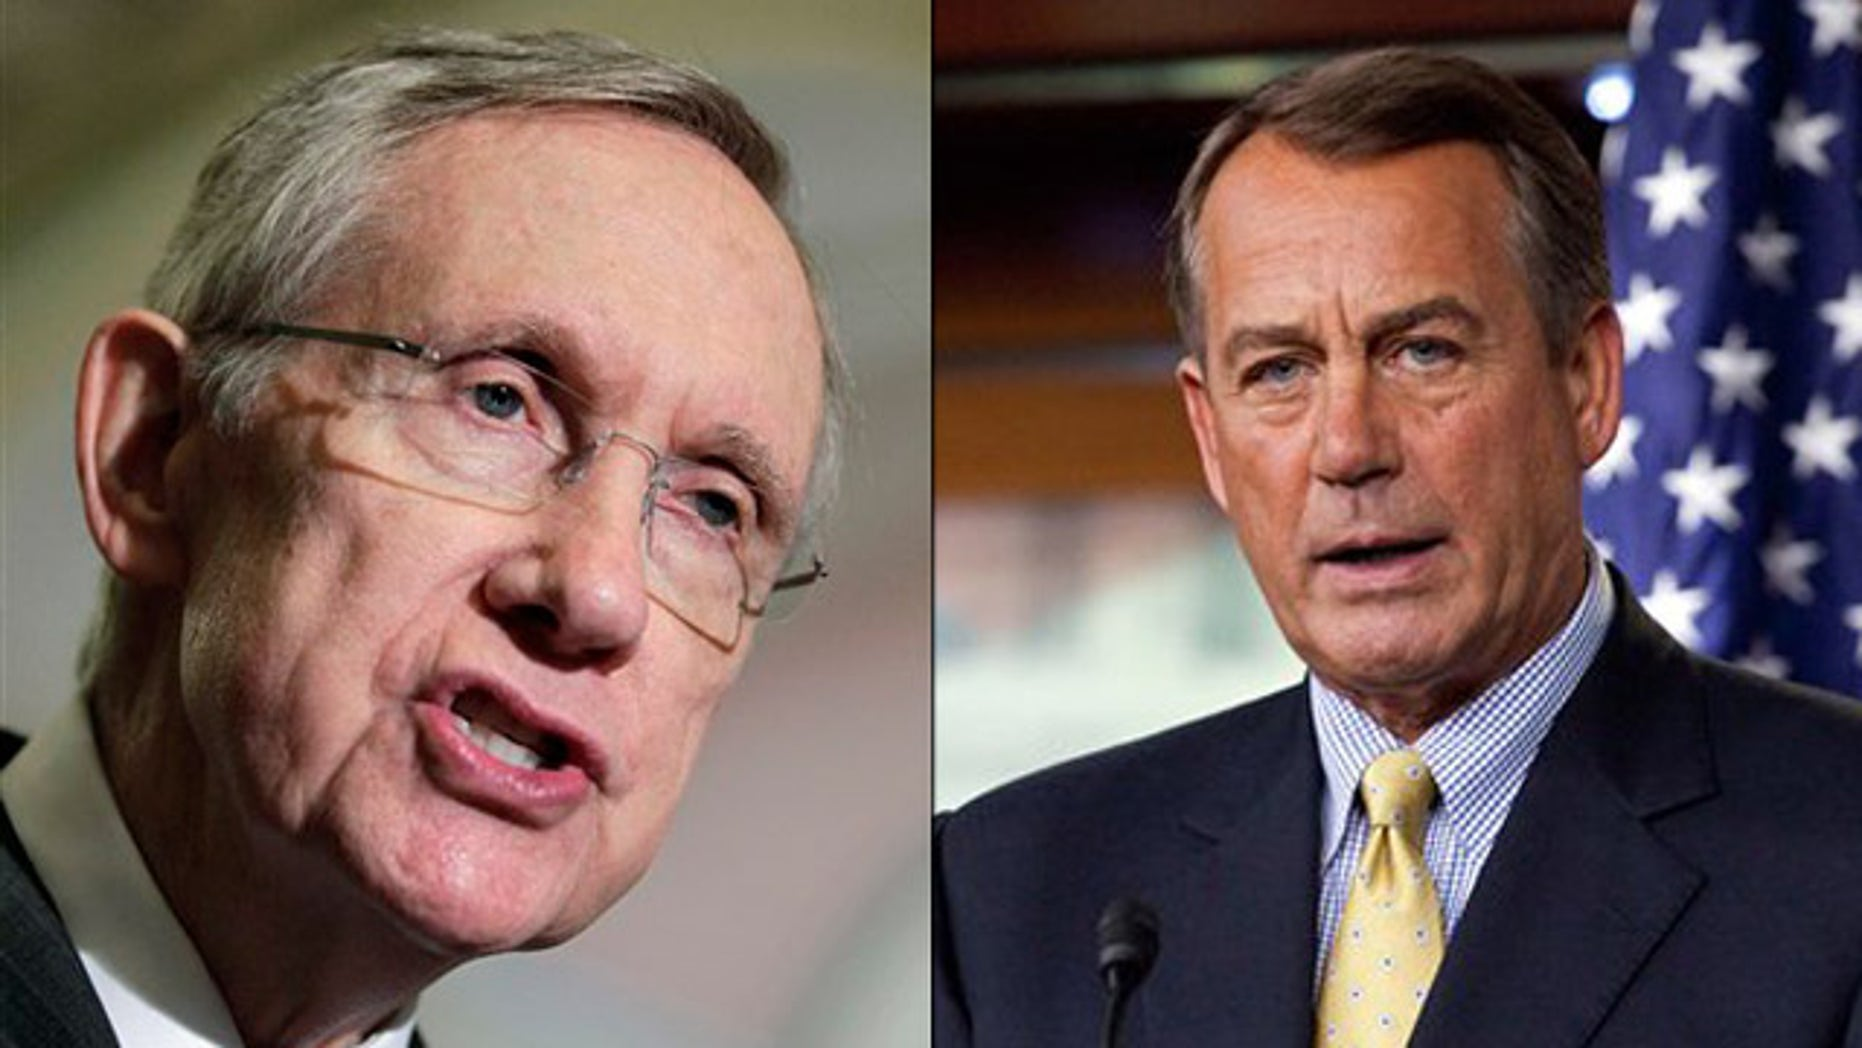 Shown here are Senate Majority Leader Harry Reid, left, and House Speaker John Boehner.